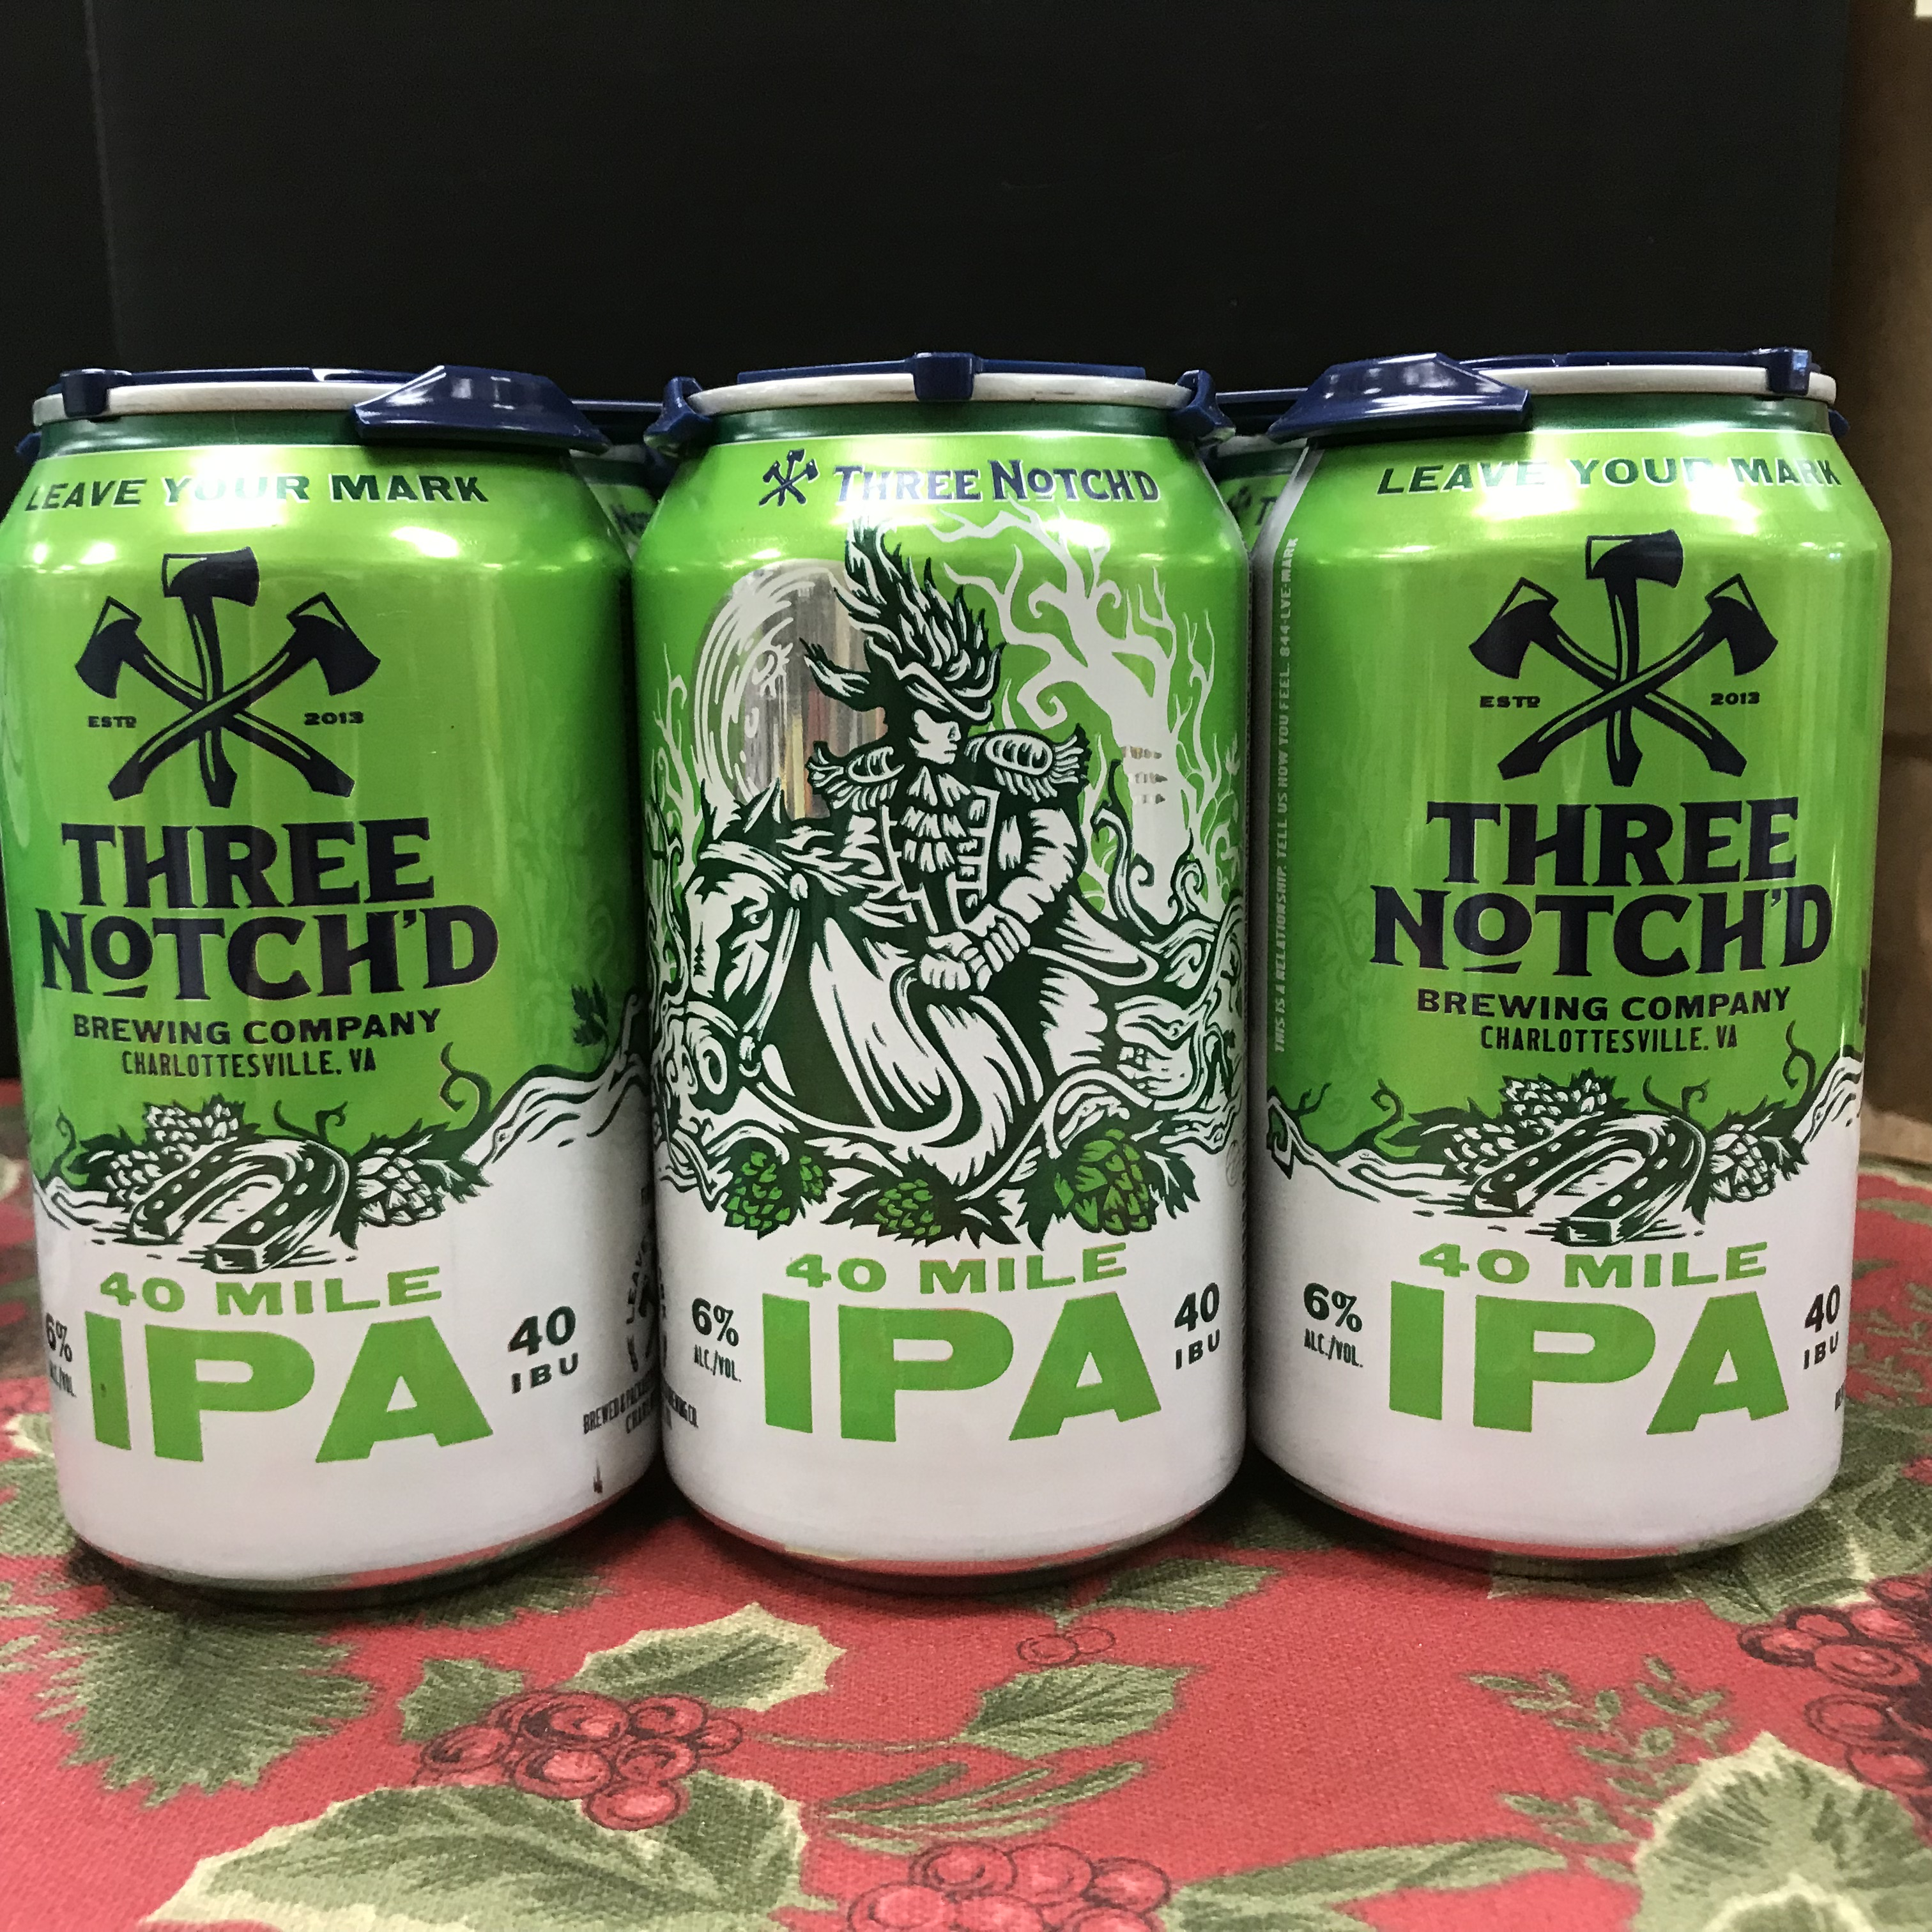 Three Notch'd 40 Mile IPA 6 x 12oz cans